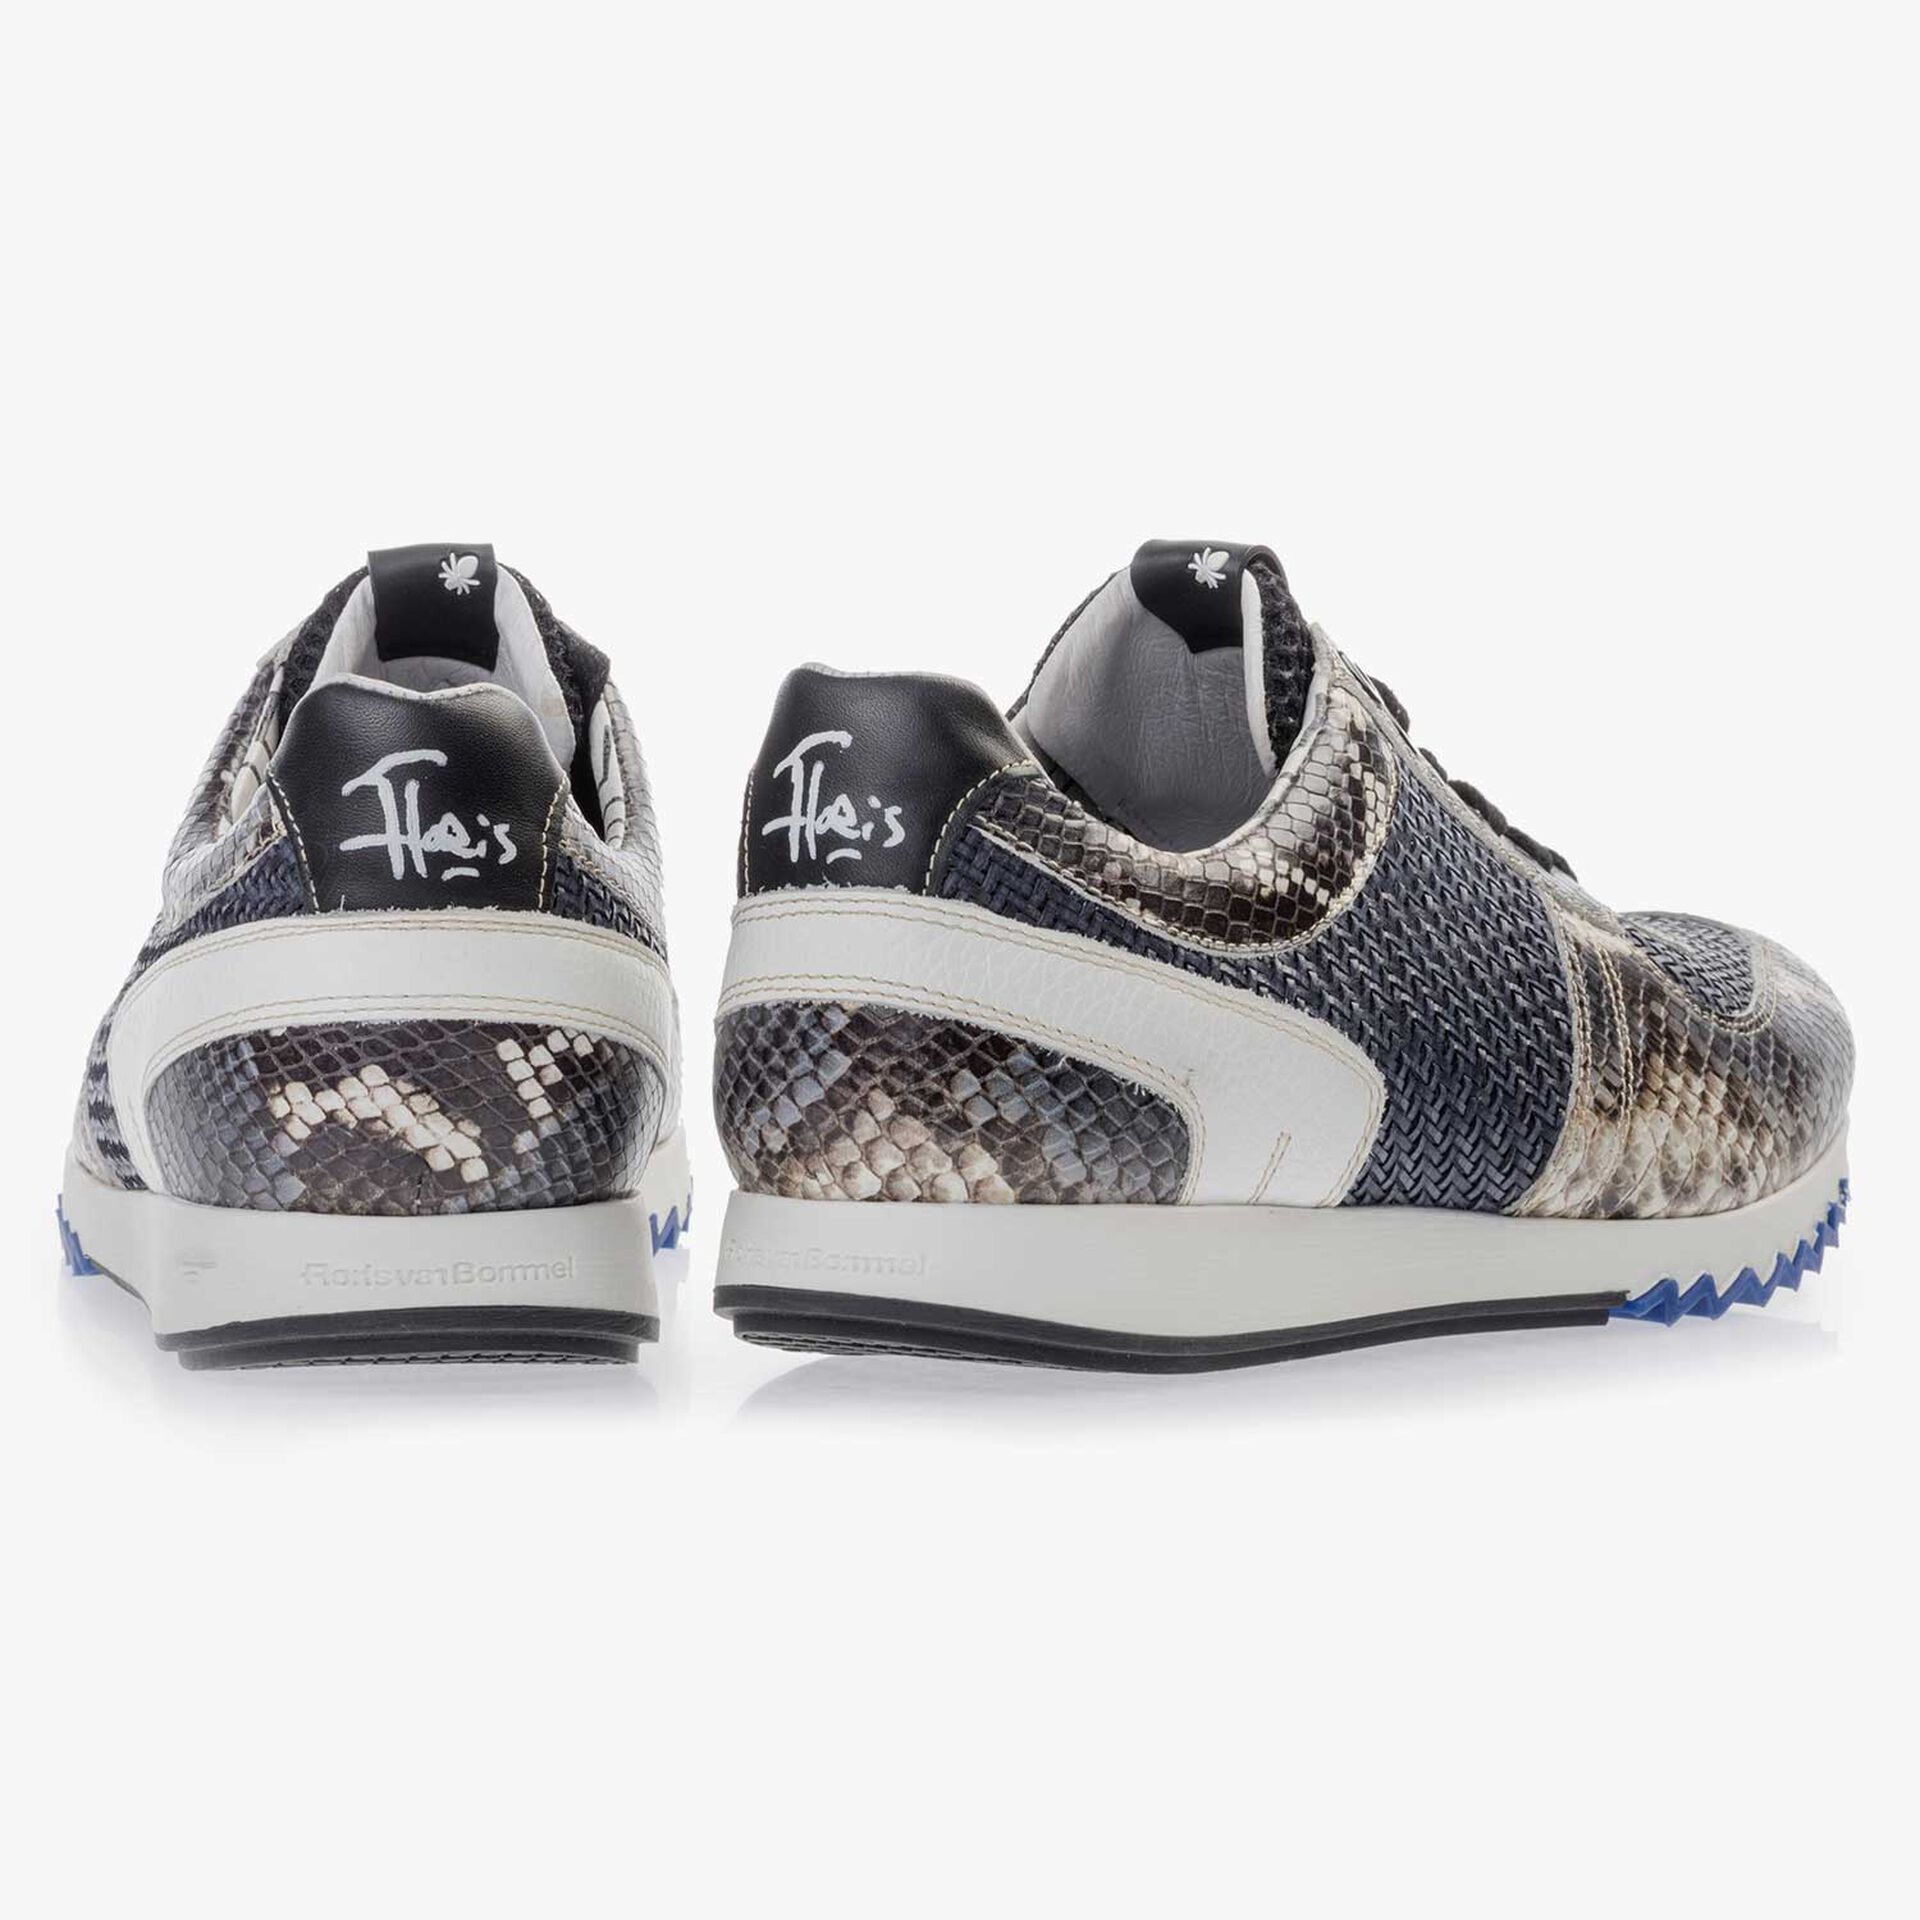 Grey blue leather sneaker finished with a snake print